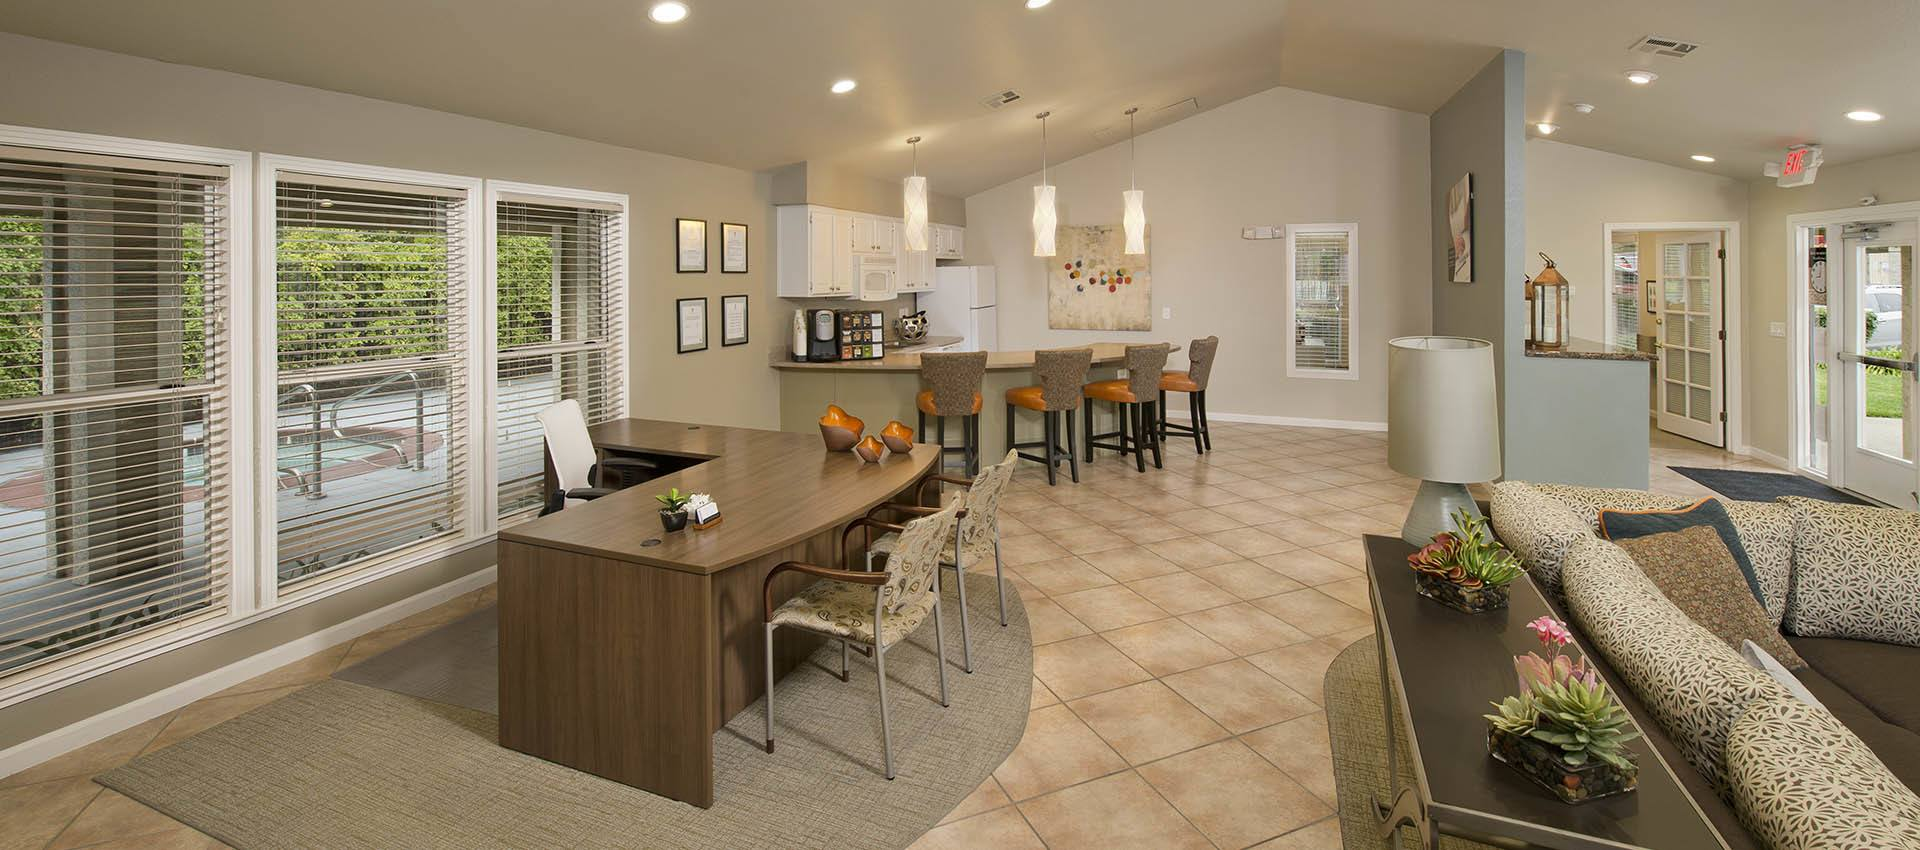 Resident Clubhouse With Kitchen at Sterling Heights Apartment Homes in Benicia